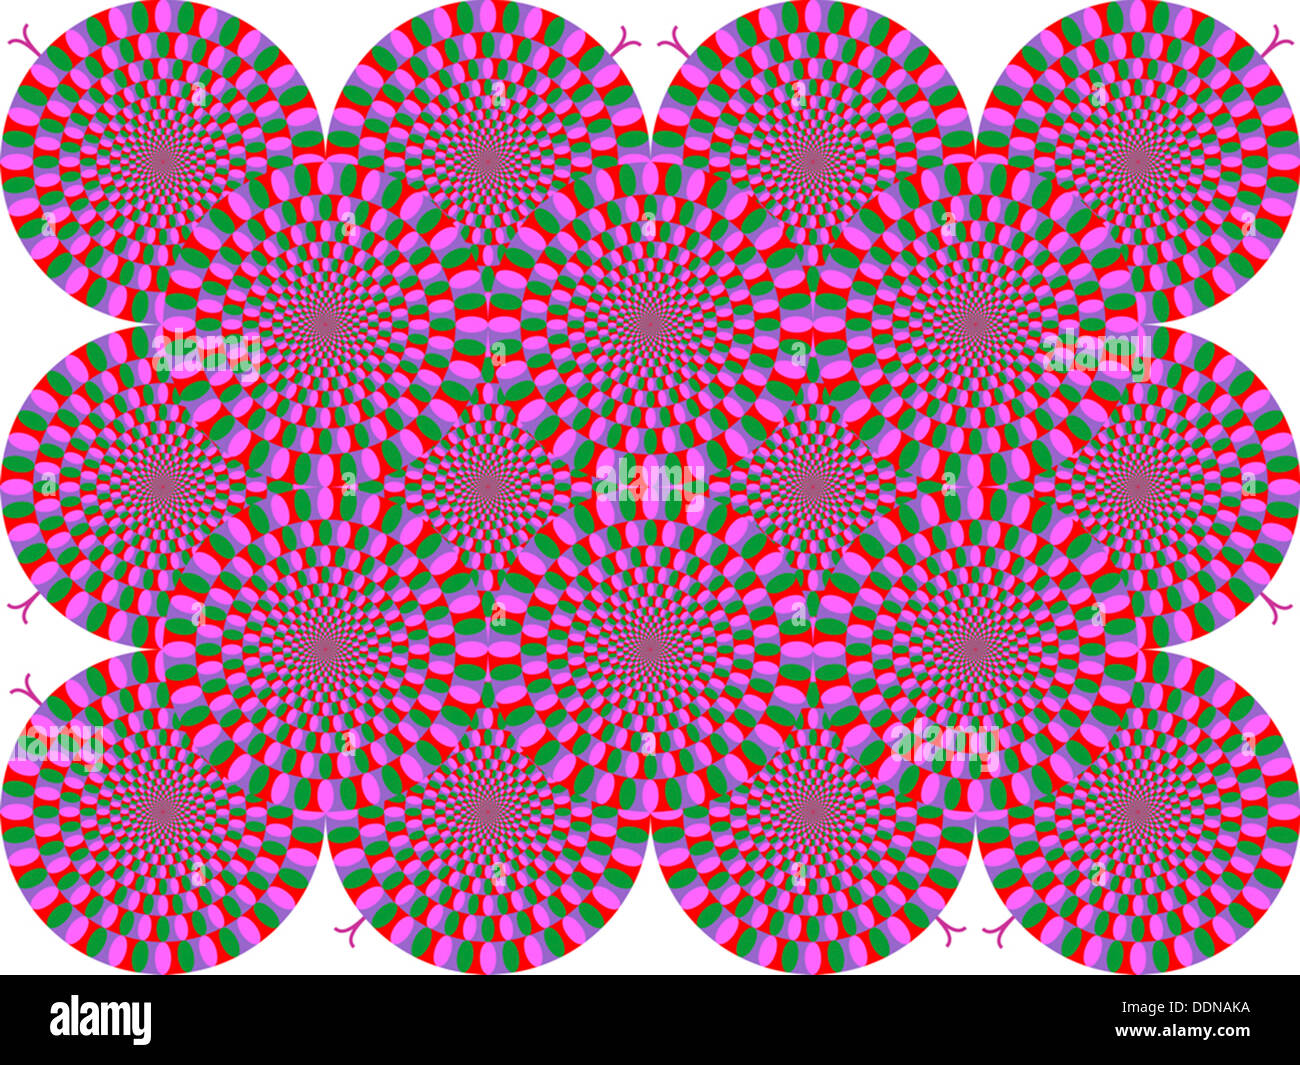 Rotating snakes illusion - Stock Image